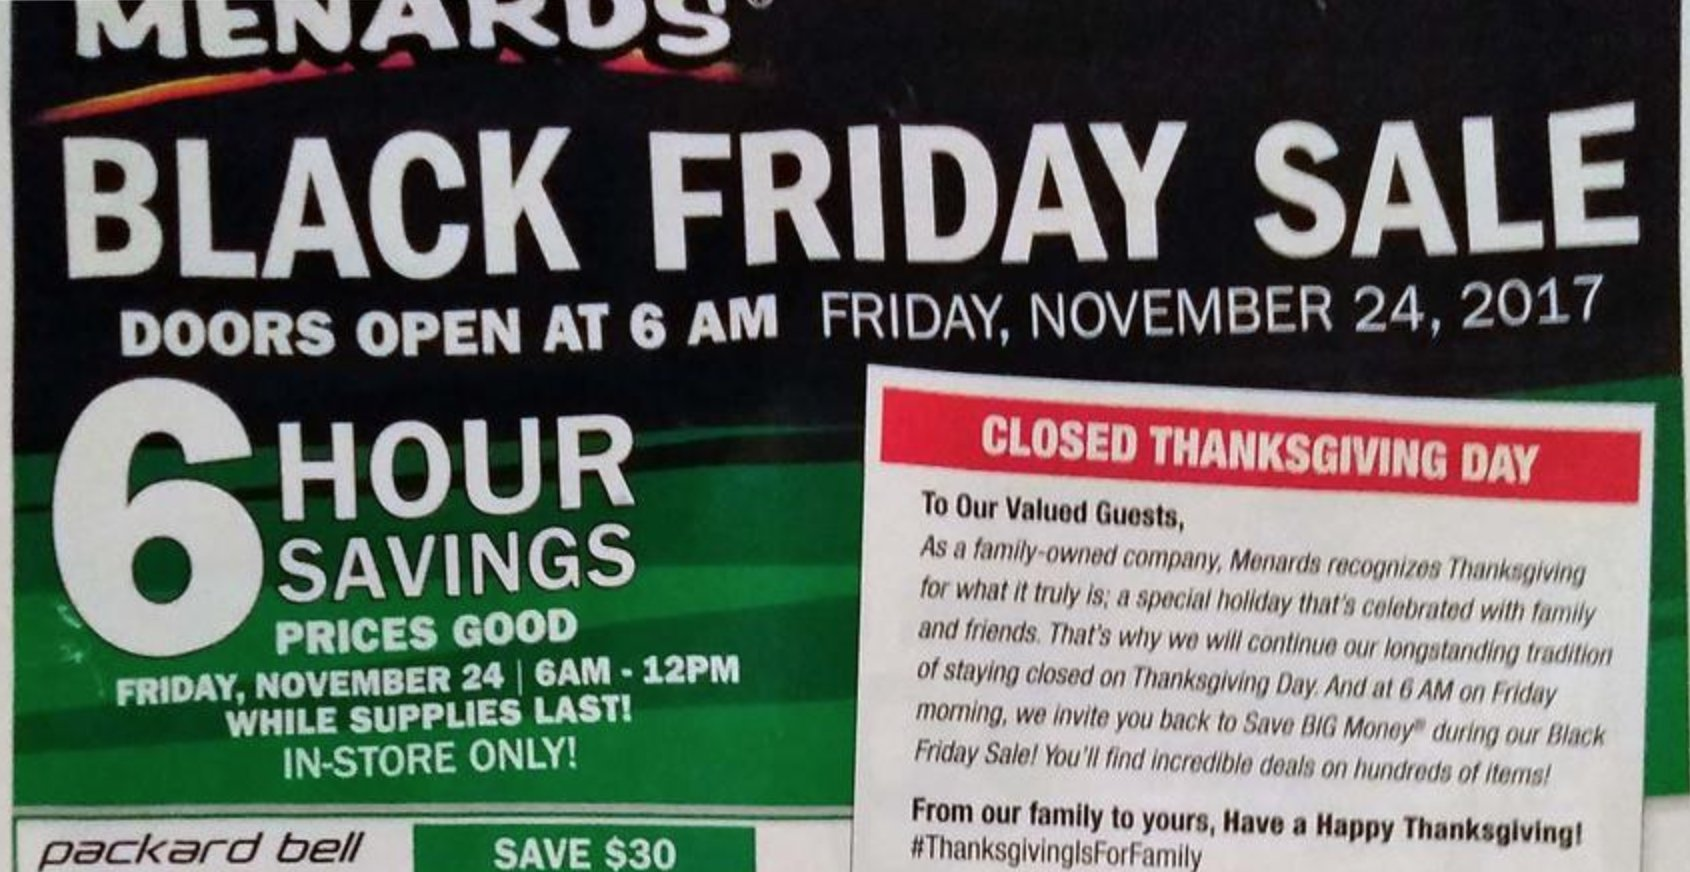 Black Friday Ads On Twitter We Just Leaked The Menards Blackfriday Ad Https T Co C46inhvsox